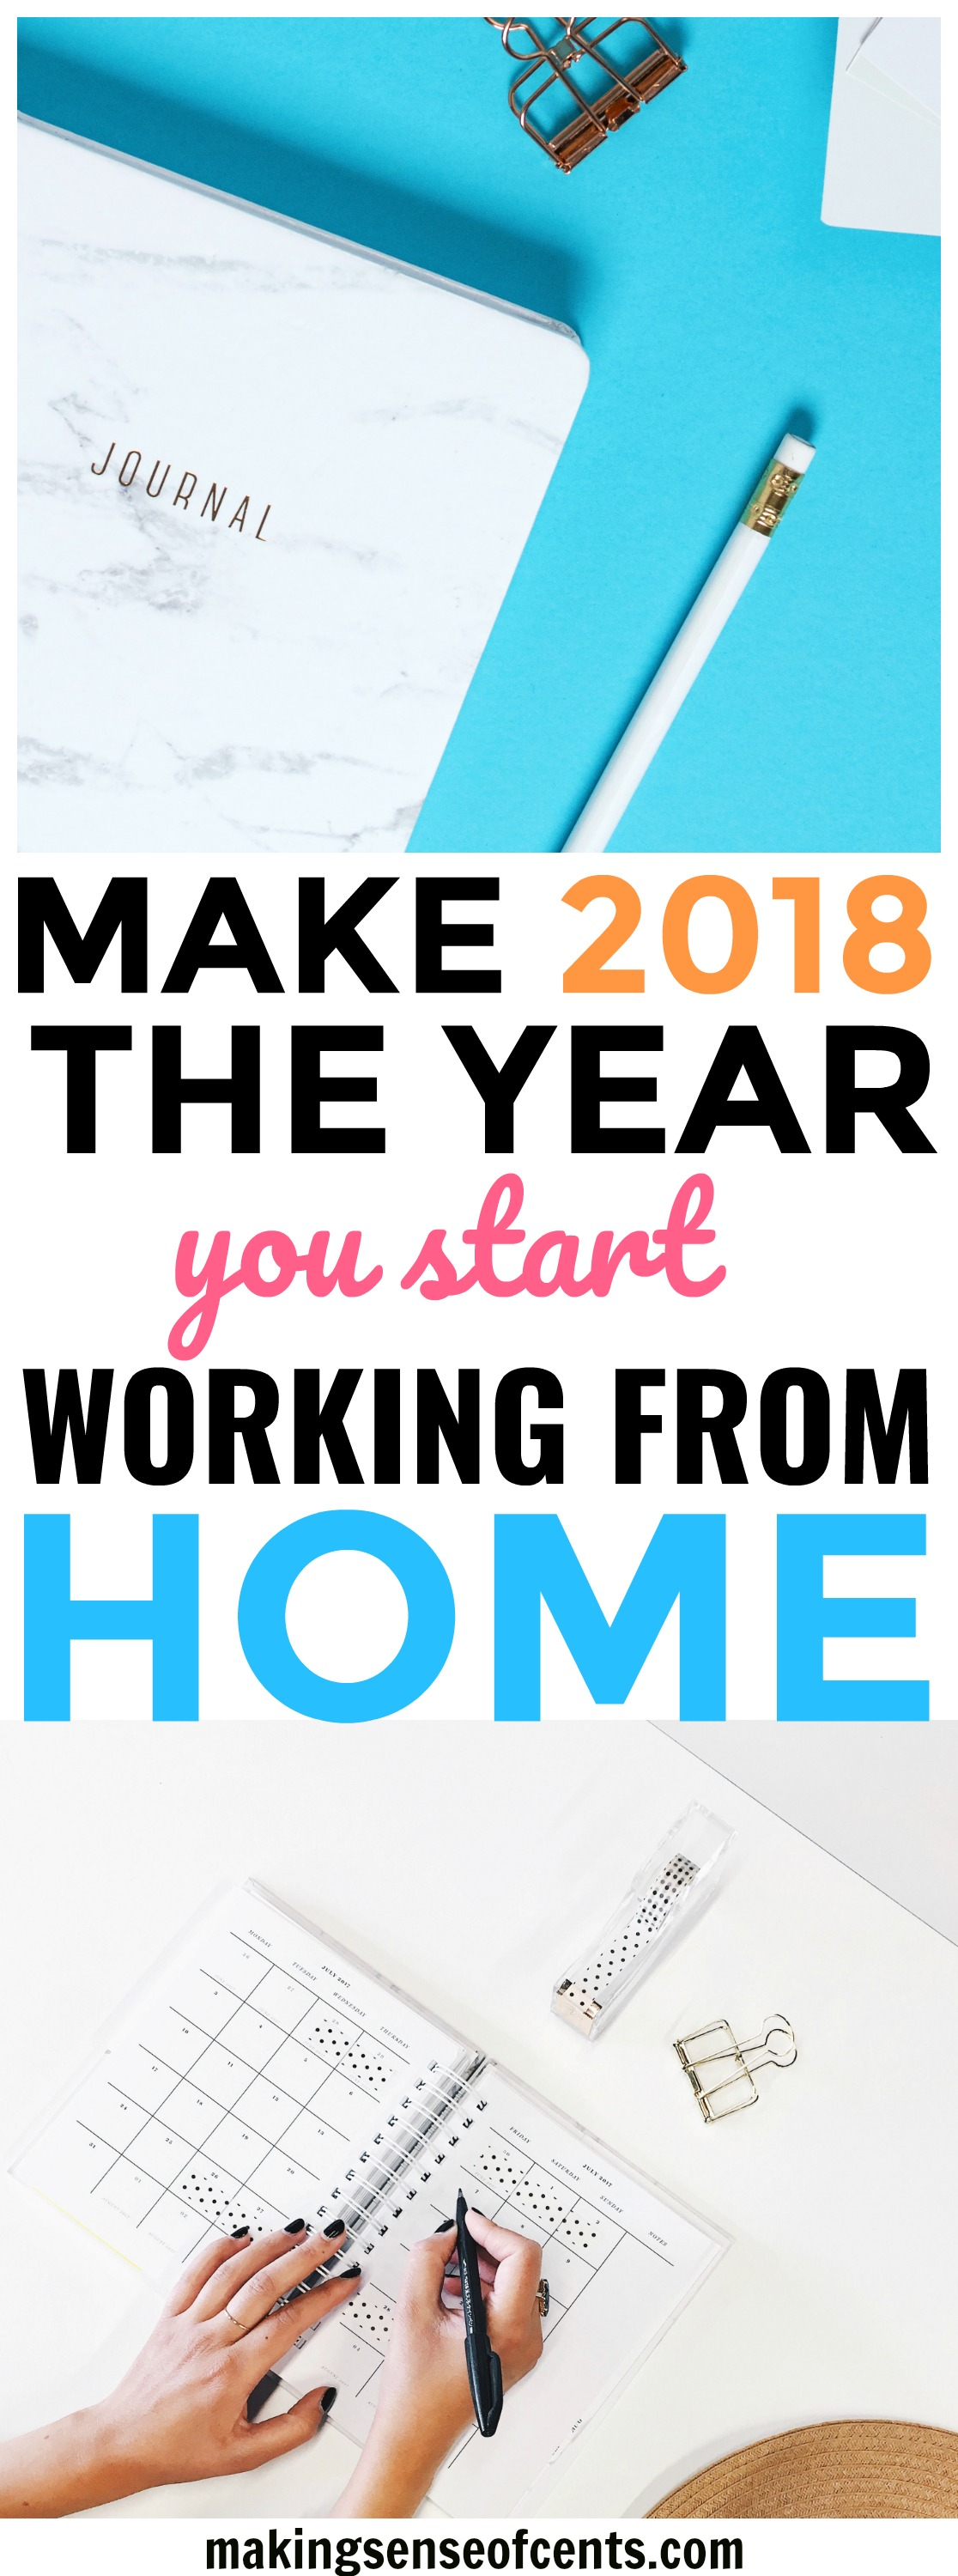 Make 2018 The Year You Start Working From Home #workfromhome #makemoney